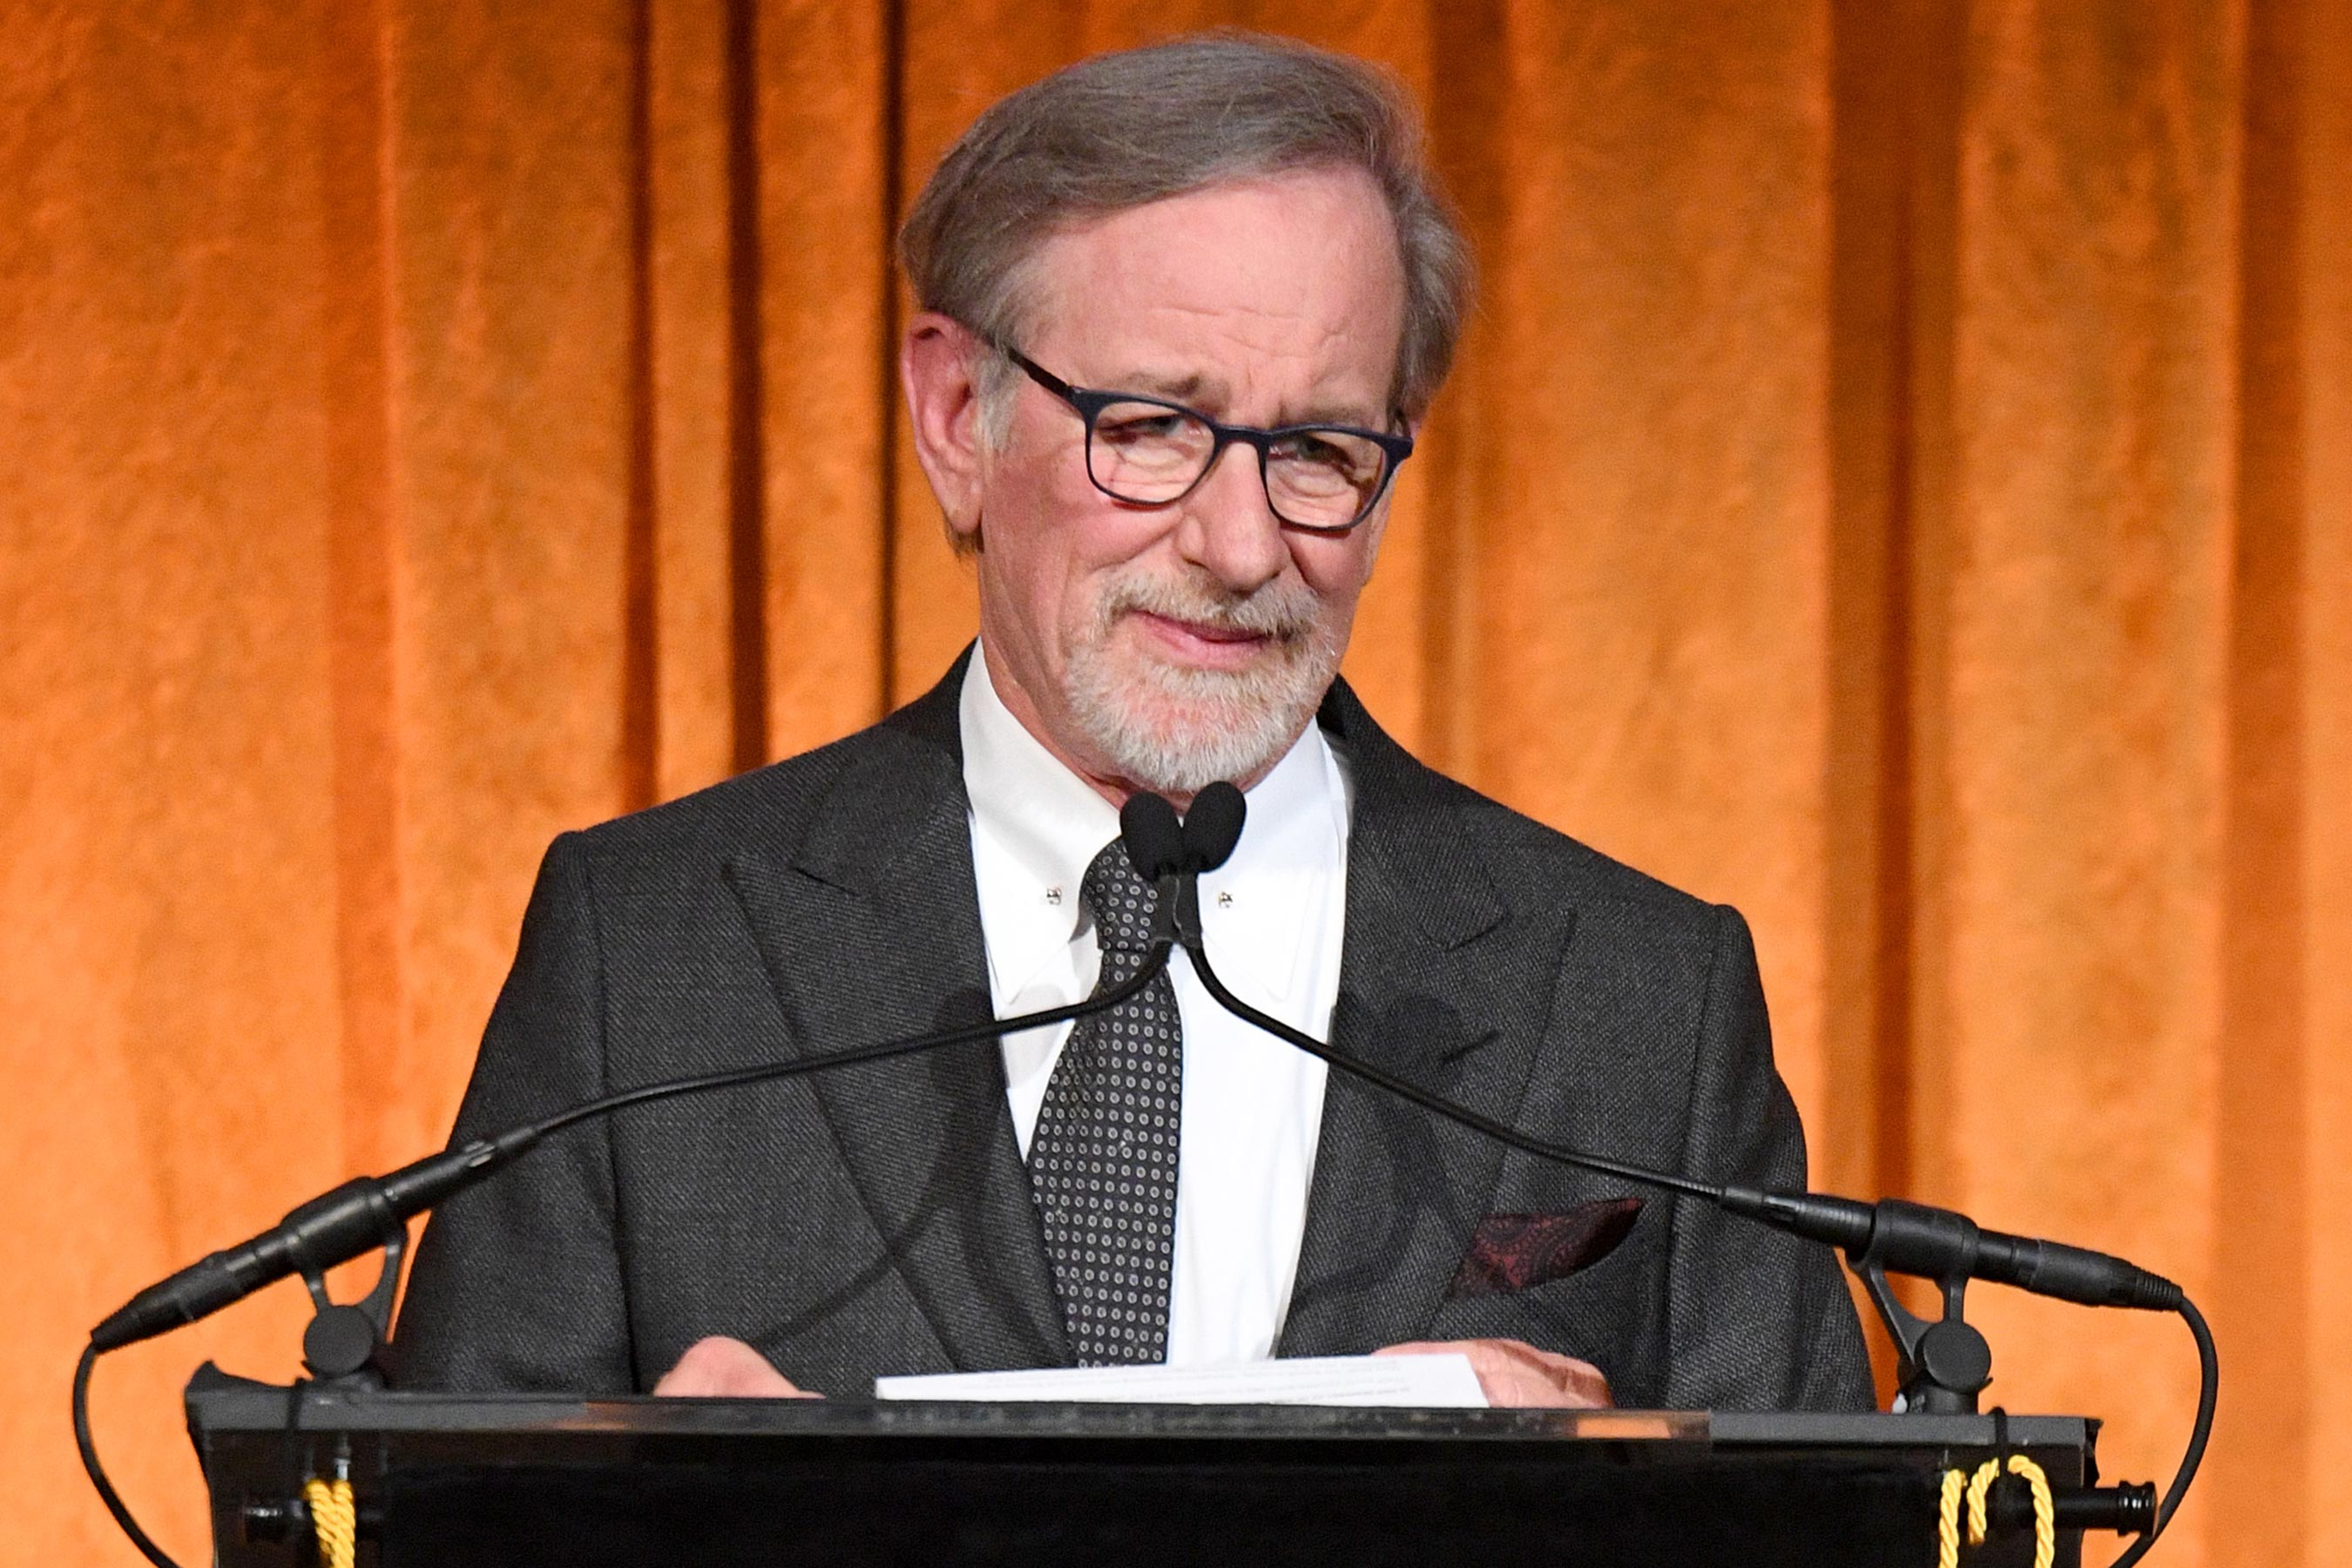 Steven Spielberg says he expects Oscars to honor female directors